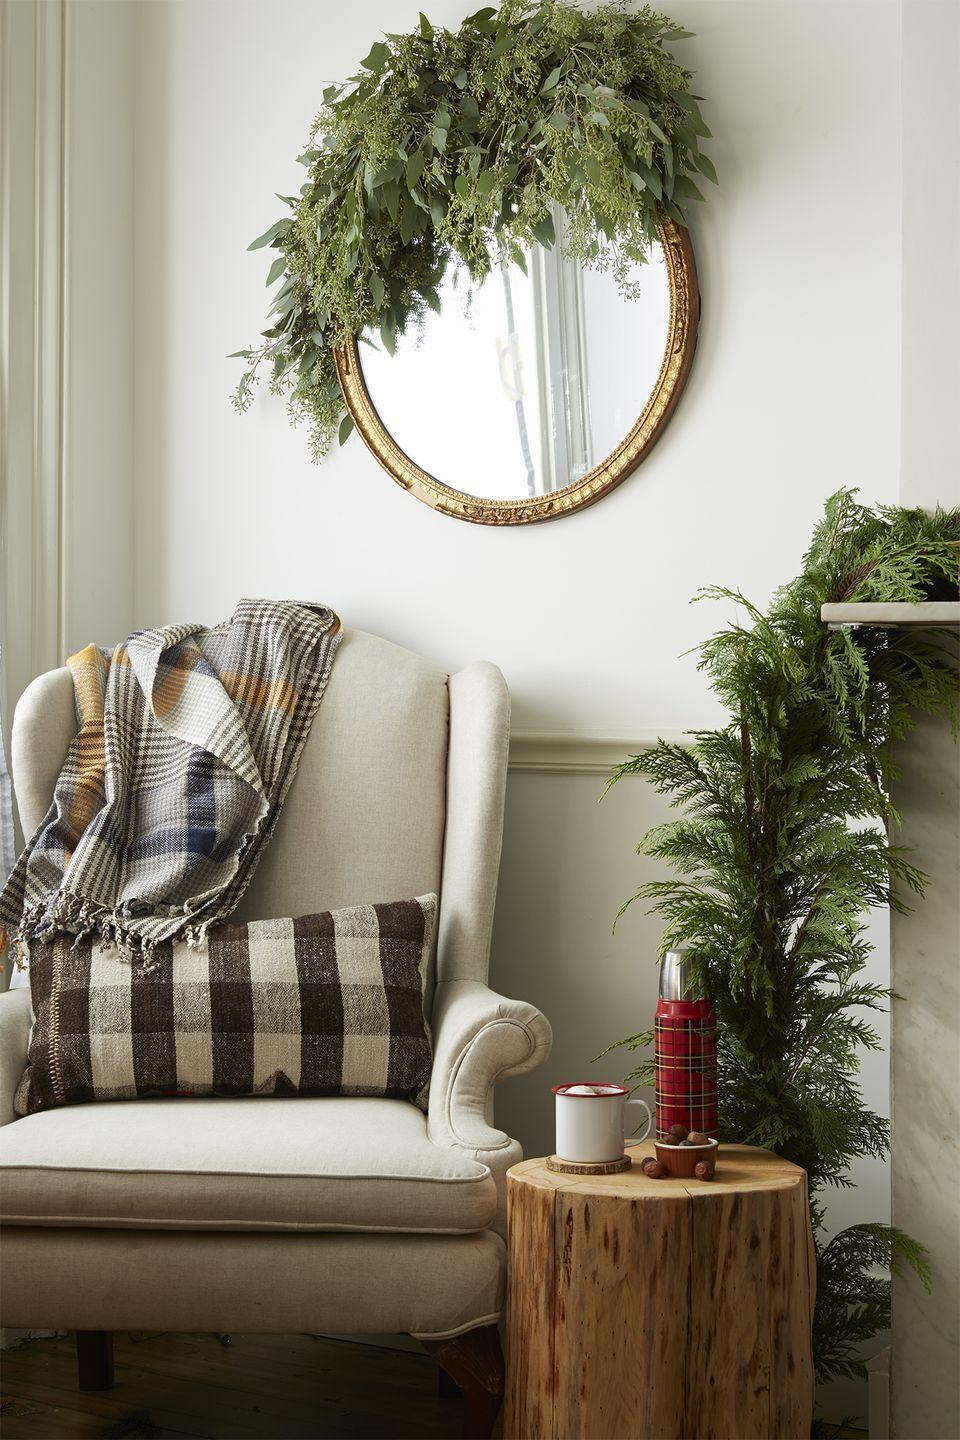 <p>Make even the smallest of spaces feel as bright and beautiful as the great doors by bringing the outside in. Spruce up fireplace mantels, bannisters, shelves, and wall mirrors with live greenery. </p>